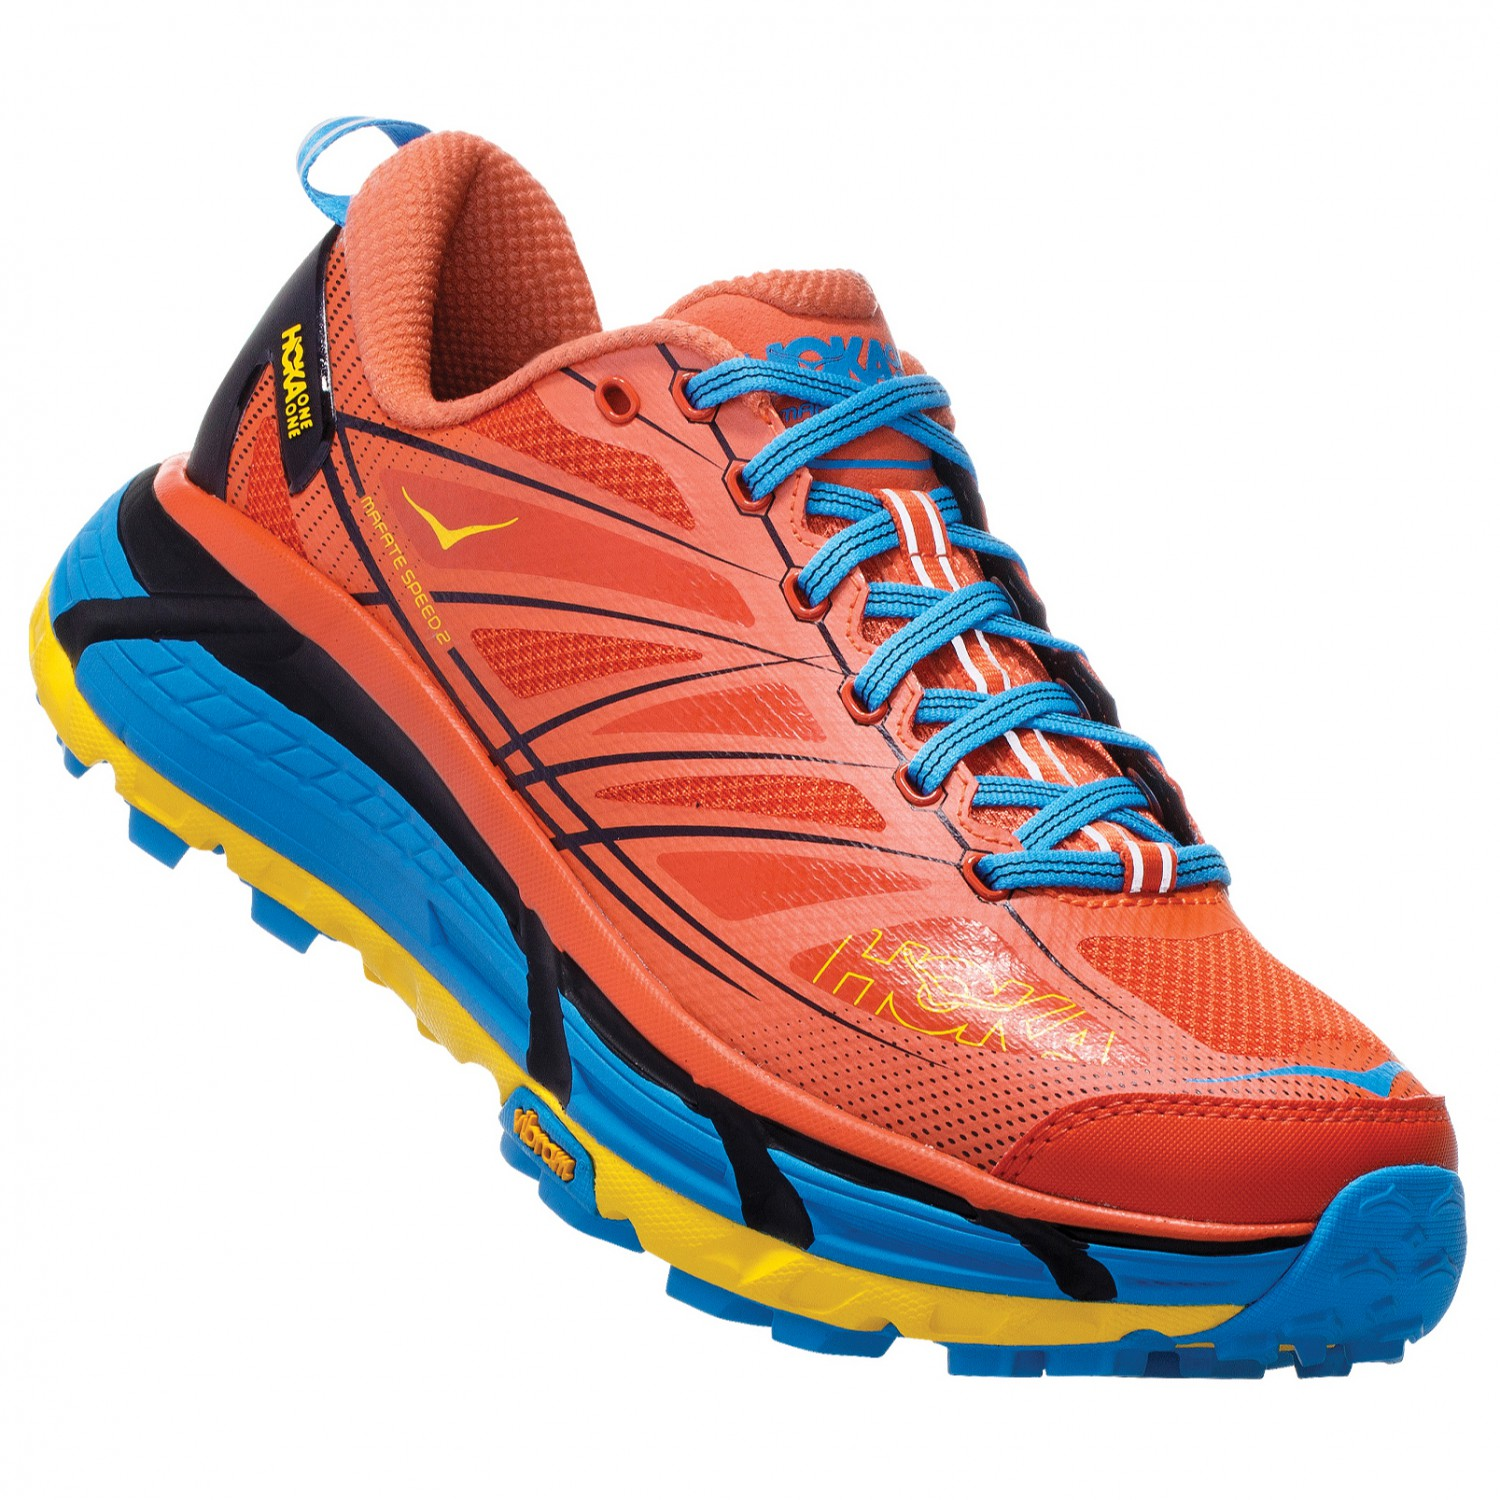 vente en magasin Meilleure vente magasin meilleurs vendeurs Hoka One One - Mafate Speed 2 - Trail running shoes - Old Gold / Moonlit  Ocean | 8,5 (US)